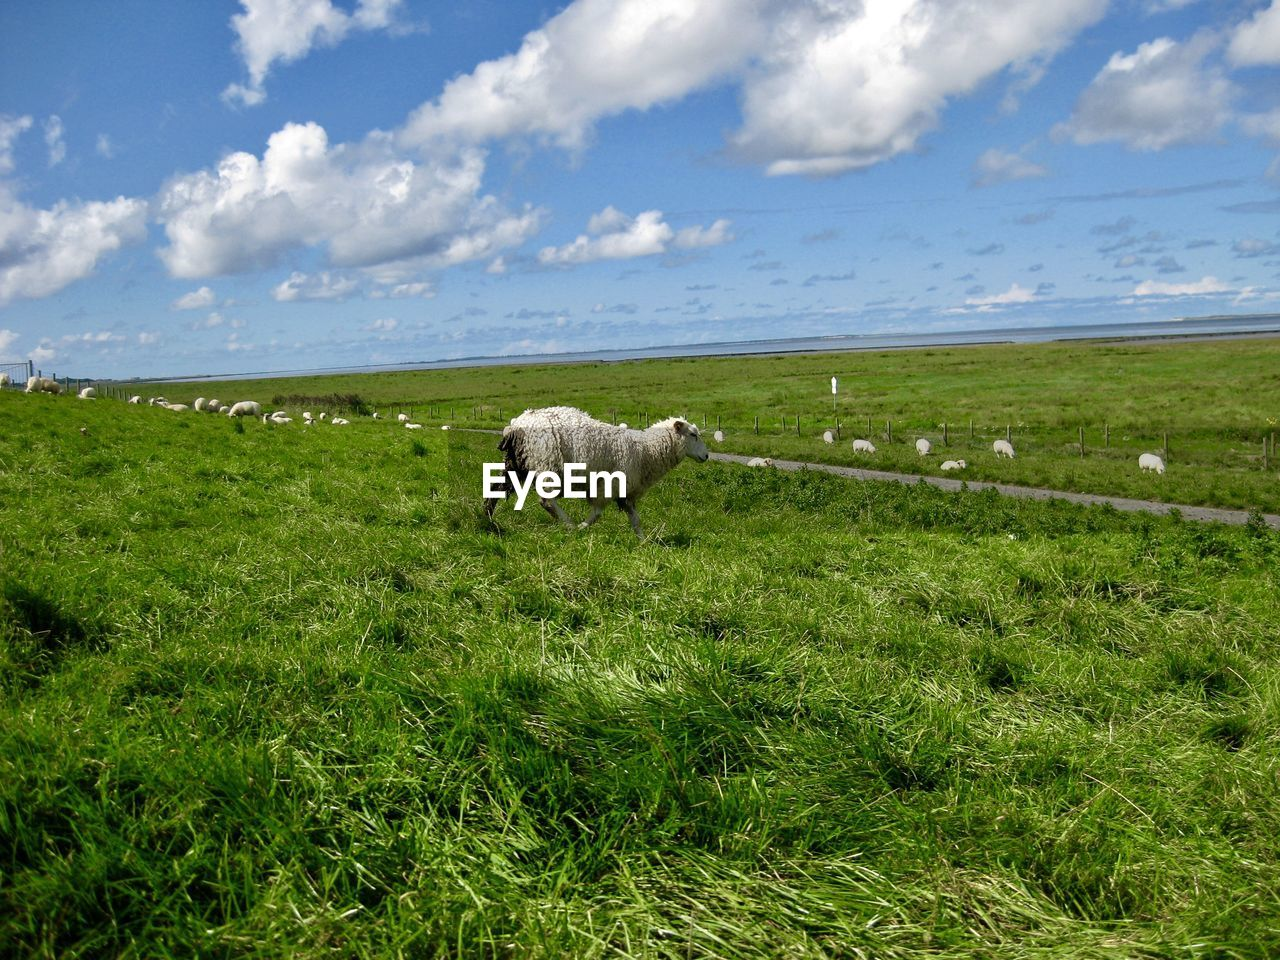 animal themes, animal, mammal, grass, domestic, pets, cloud - sky, field, domestic animals, vertebrate, plant, land, livestock, sky, green color, one animal, sheep, environment, nature, landscape, no people, outdoors, herbivorous